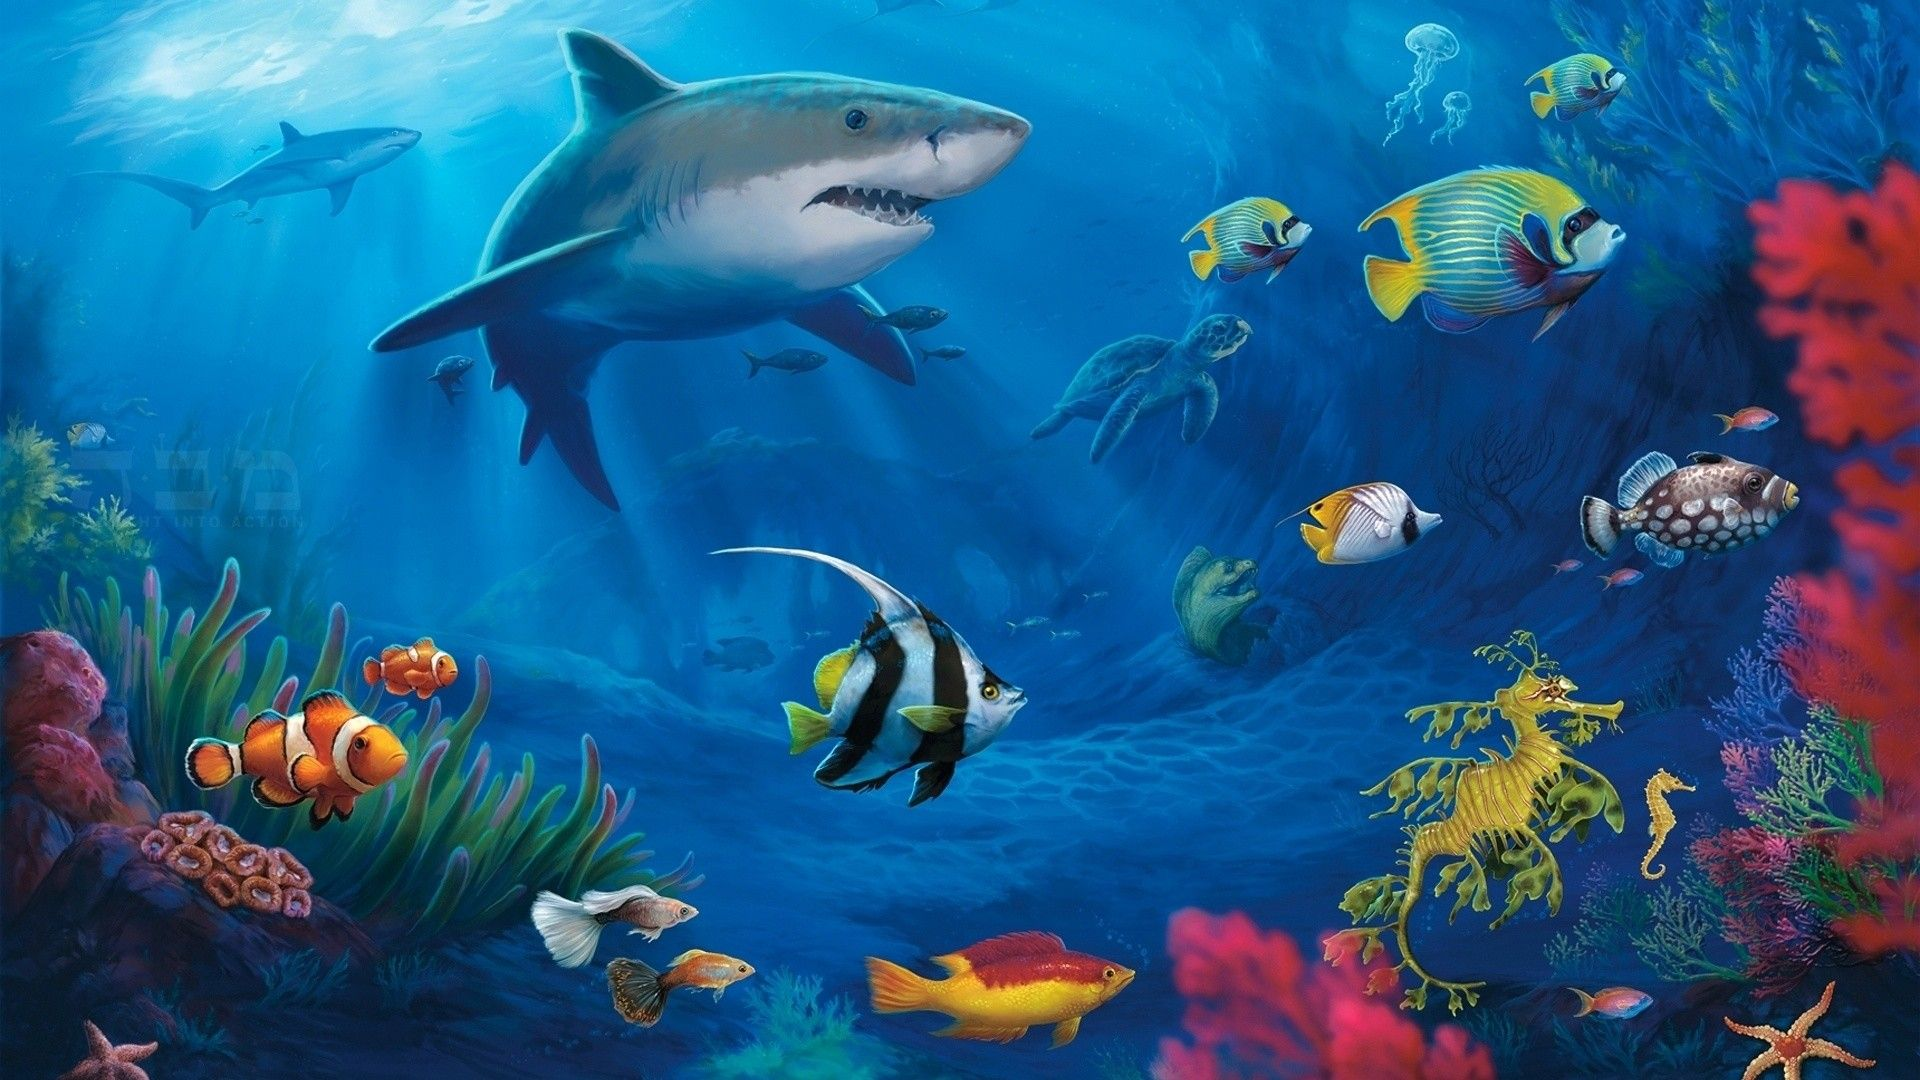 Anime Live Wallpaper Free Download For Pc Cool Live Wallpapers For Pc 50 Images Anime Wallpapers Hd In 2020 Underwater Wallpaper Live Wallpaper For Pc Shark Painting